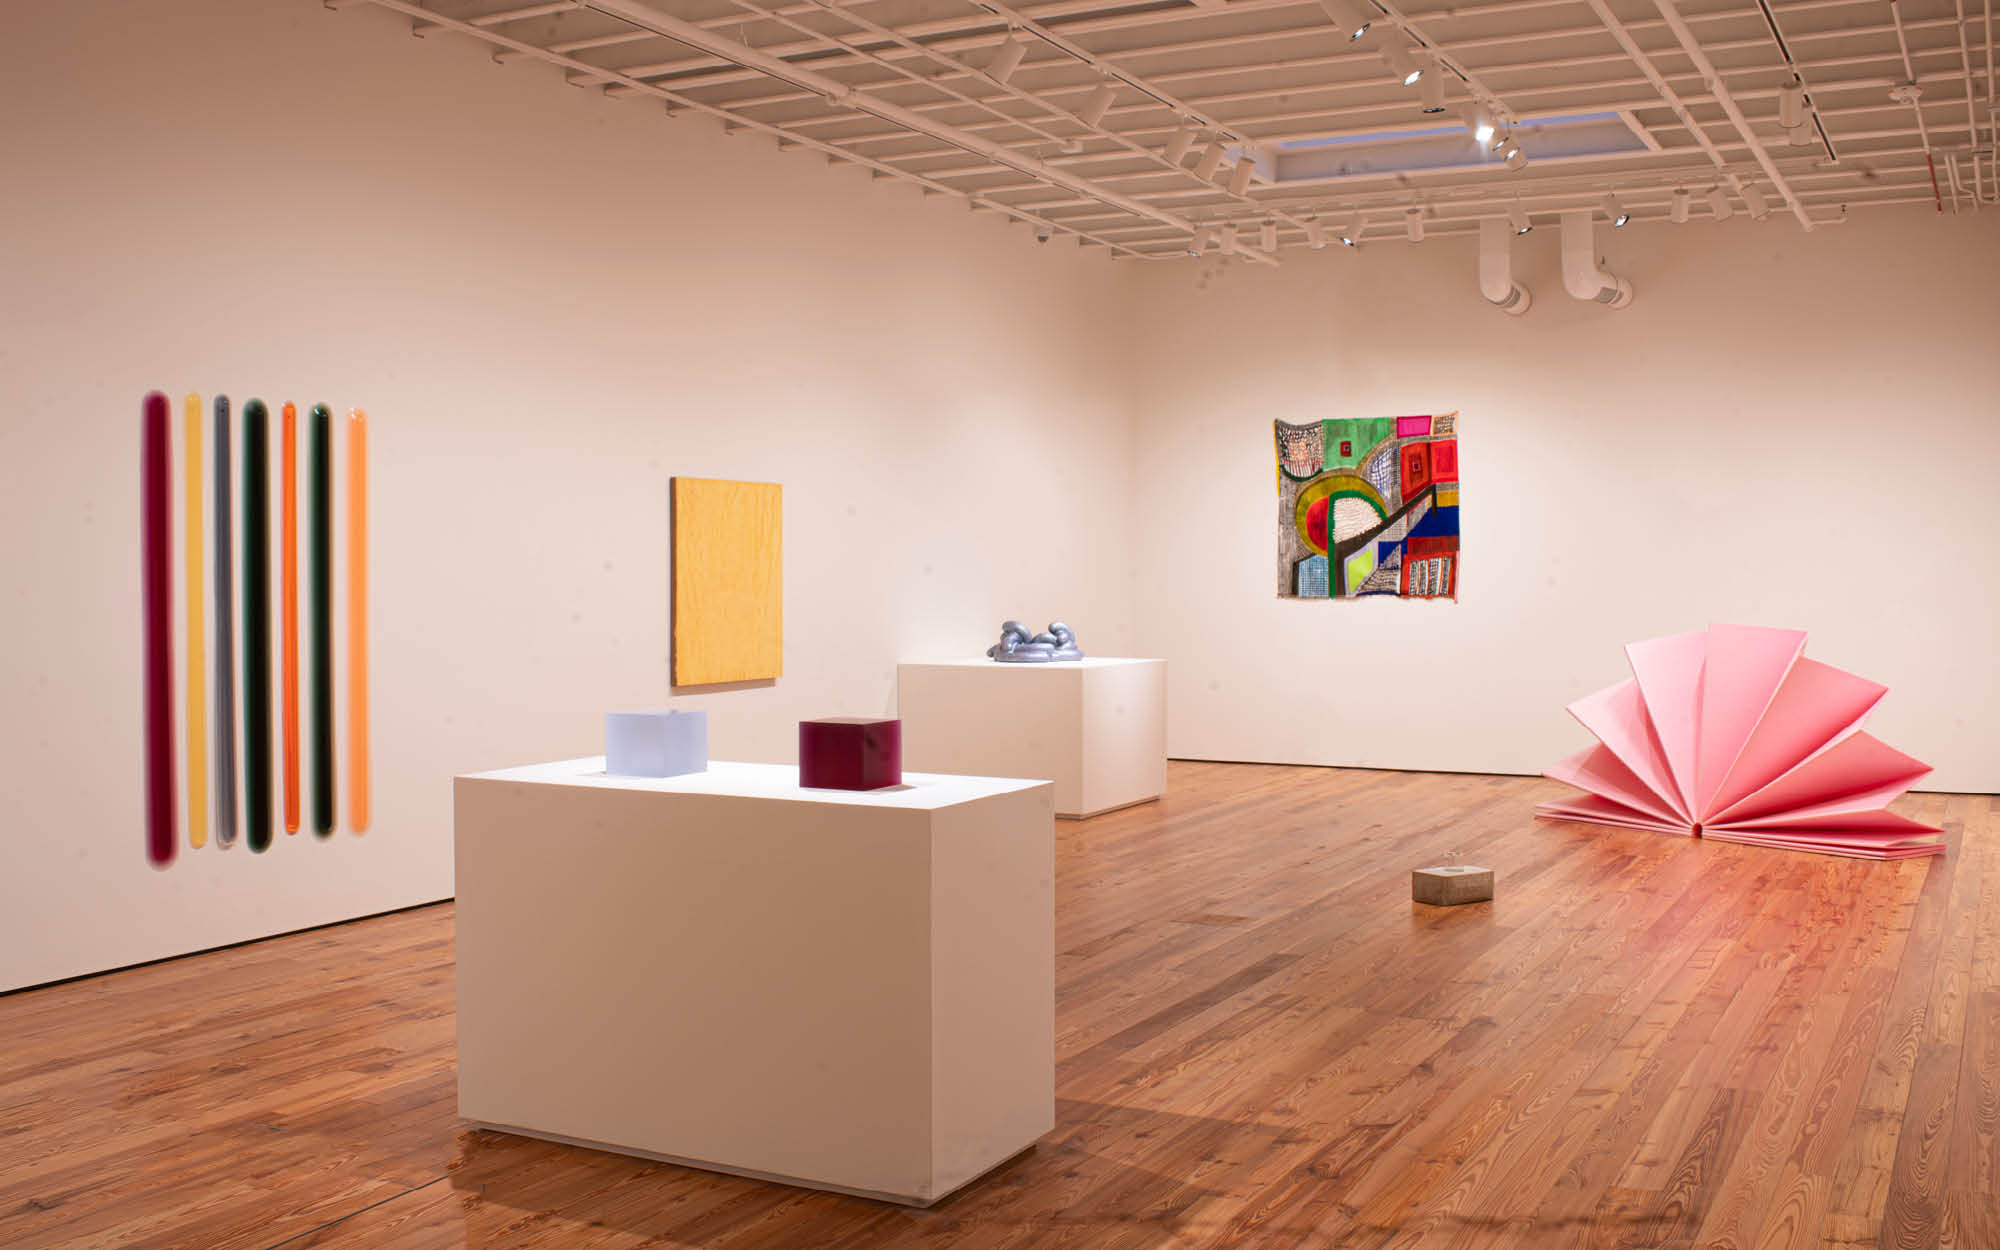 Color.Theory.&(b/w) Exhibition at Sarasota Art Museum's John & Charlotte Suhler Gallery